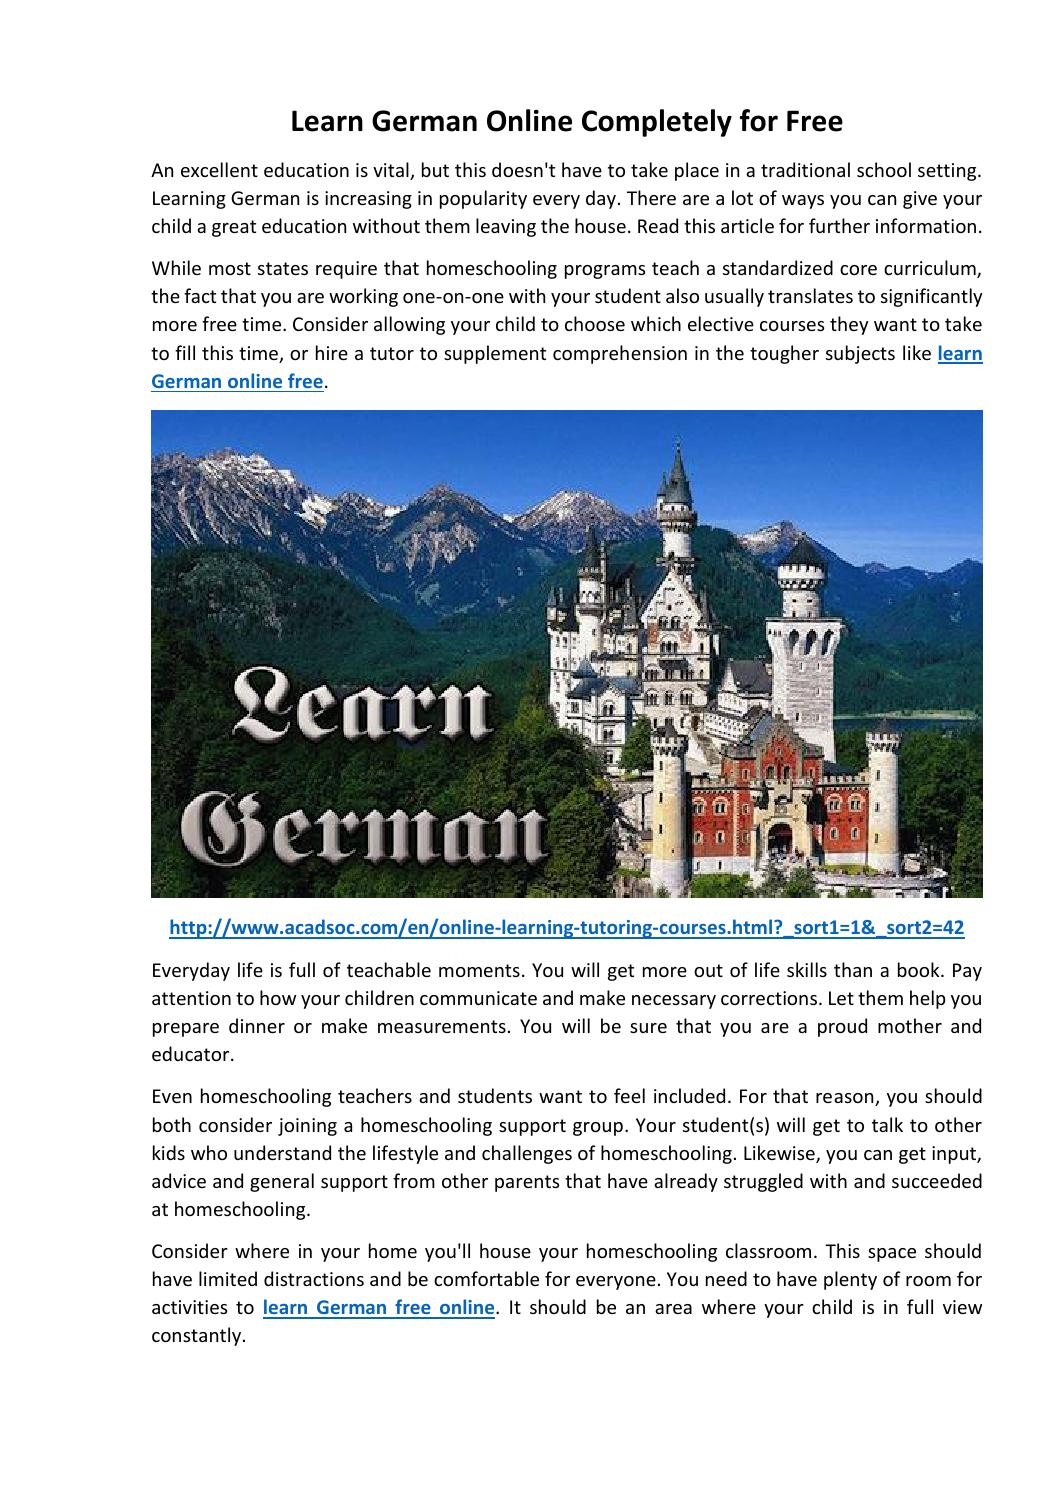 free dating in germany G20germay - the official website of the federal government on the german g20 presidency find out more about the german g20 presidency here.